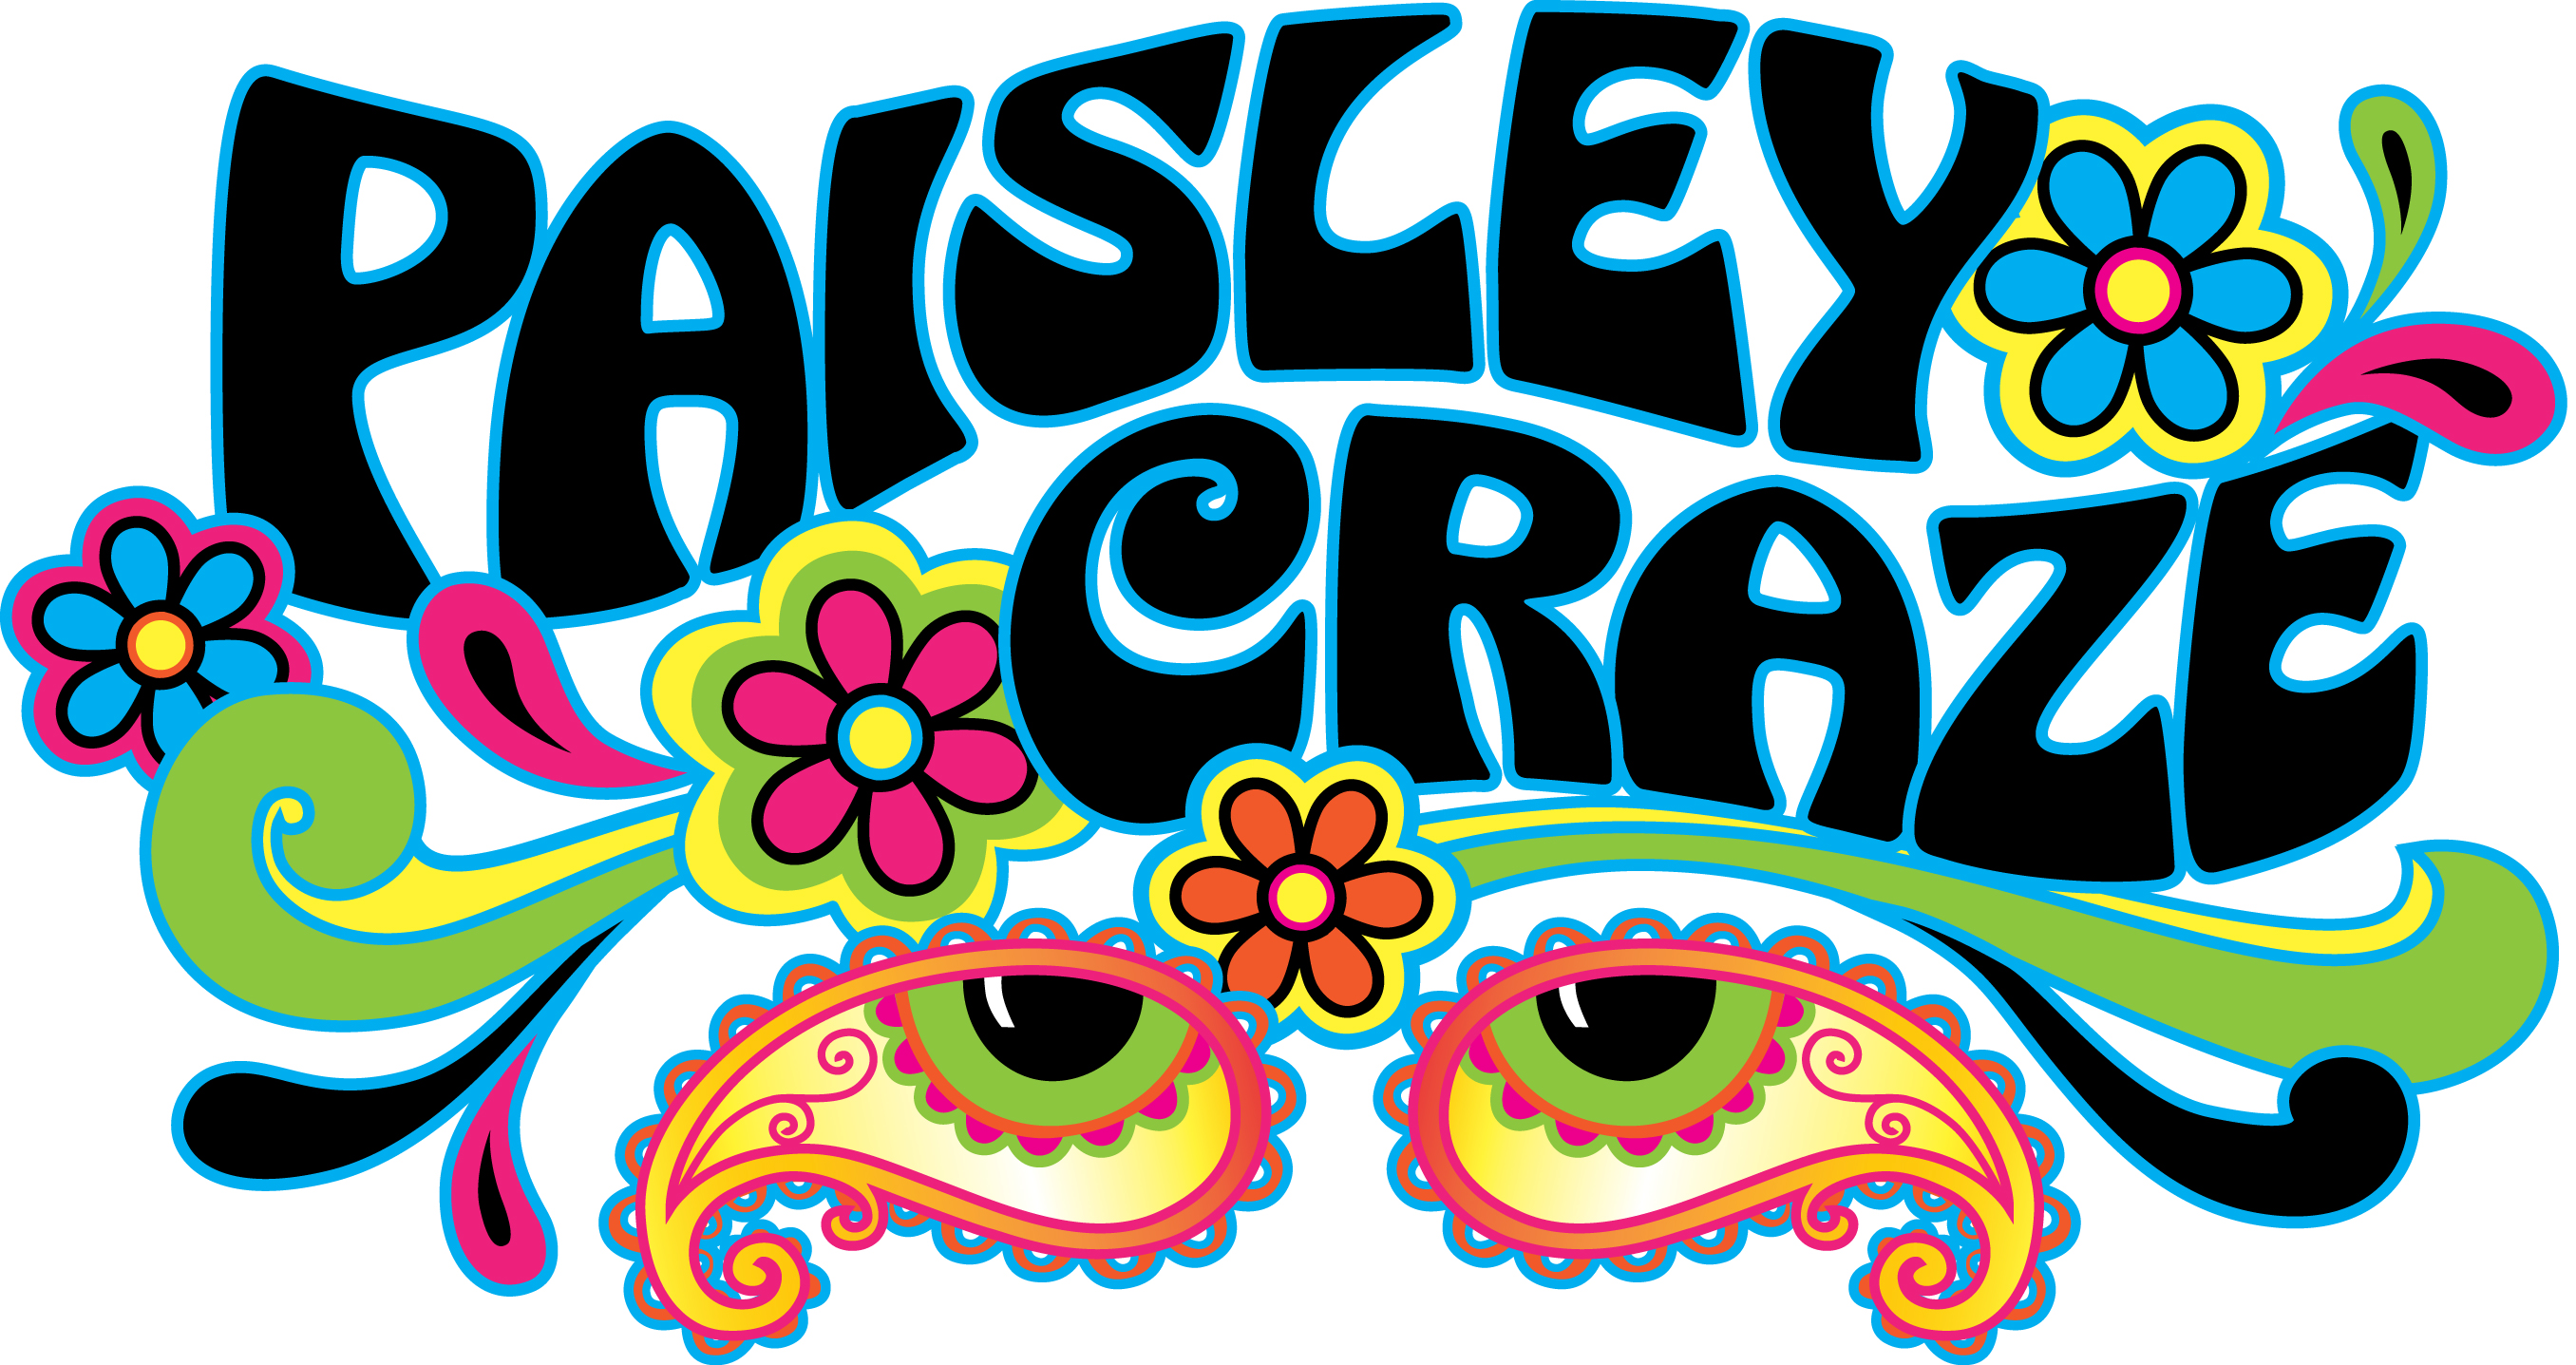 Paisley Craze Band